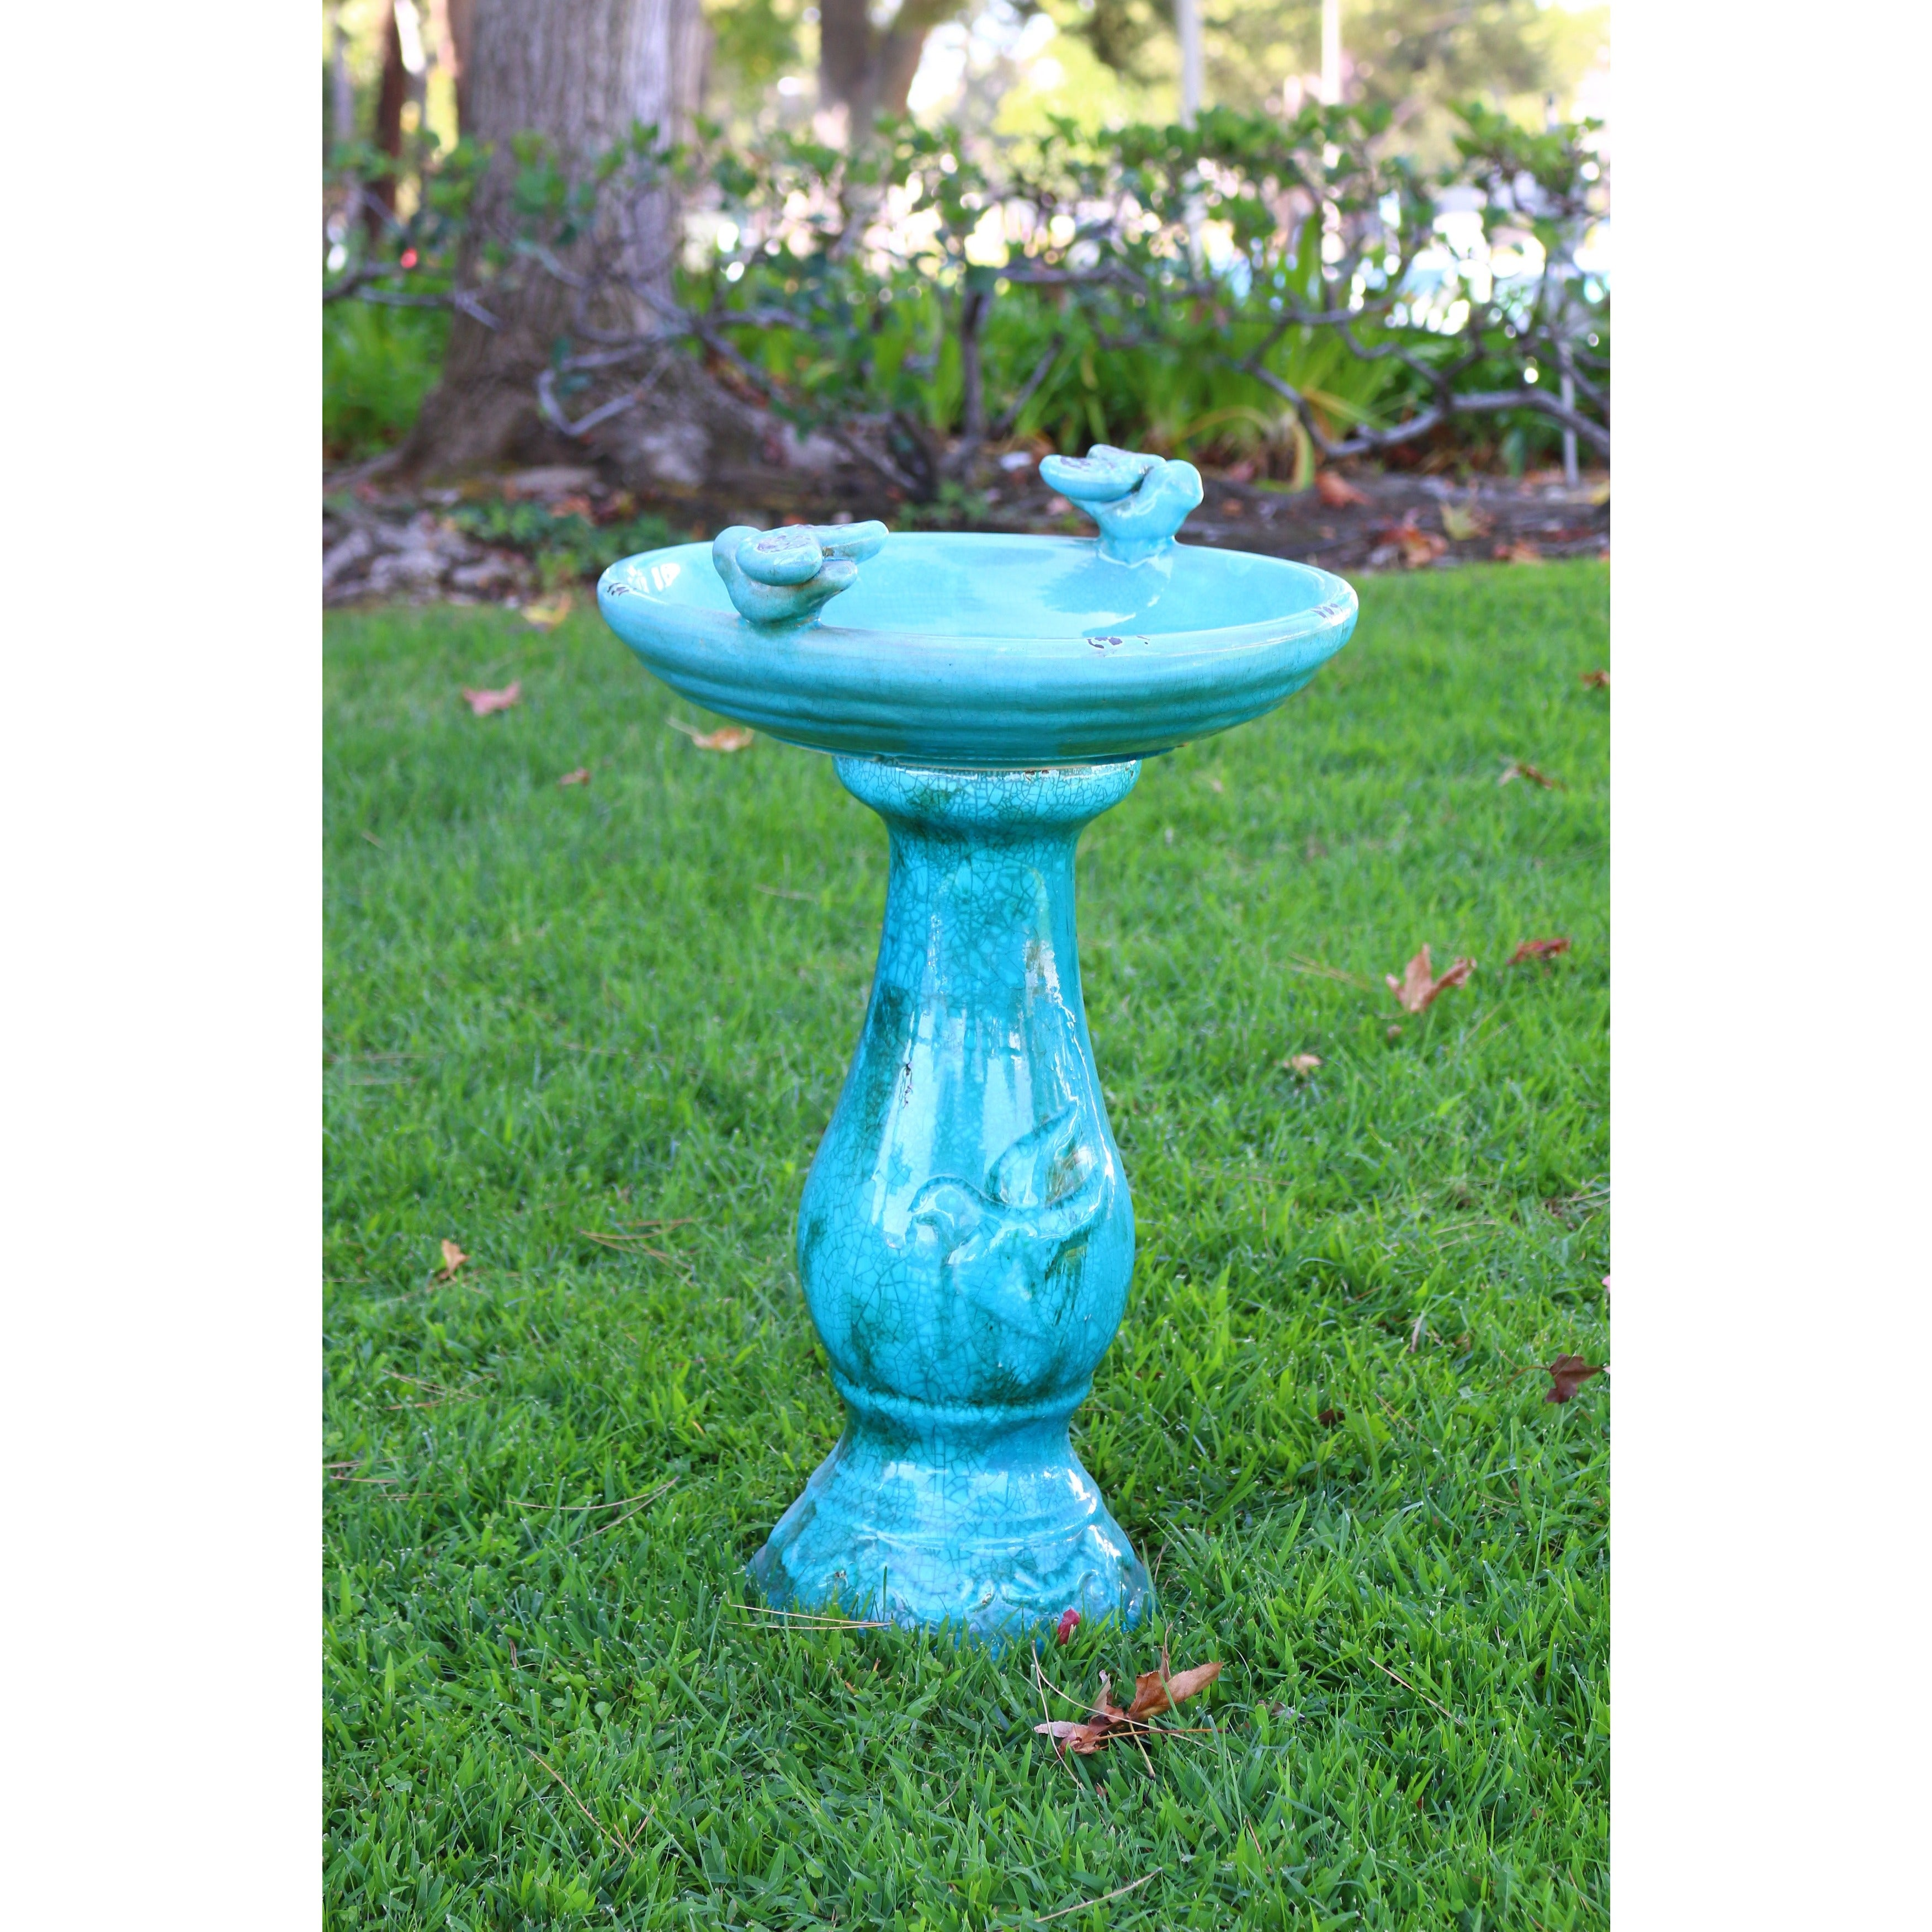 Shop Turquoise Antique Ceramic Bird Bath with Two Birds - Free ...